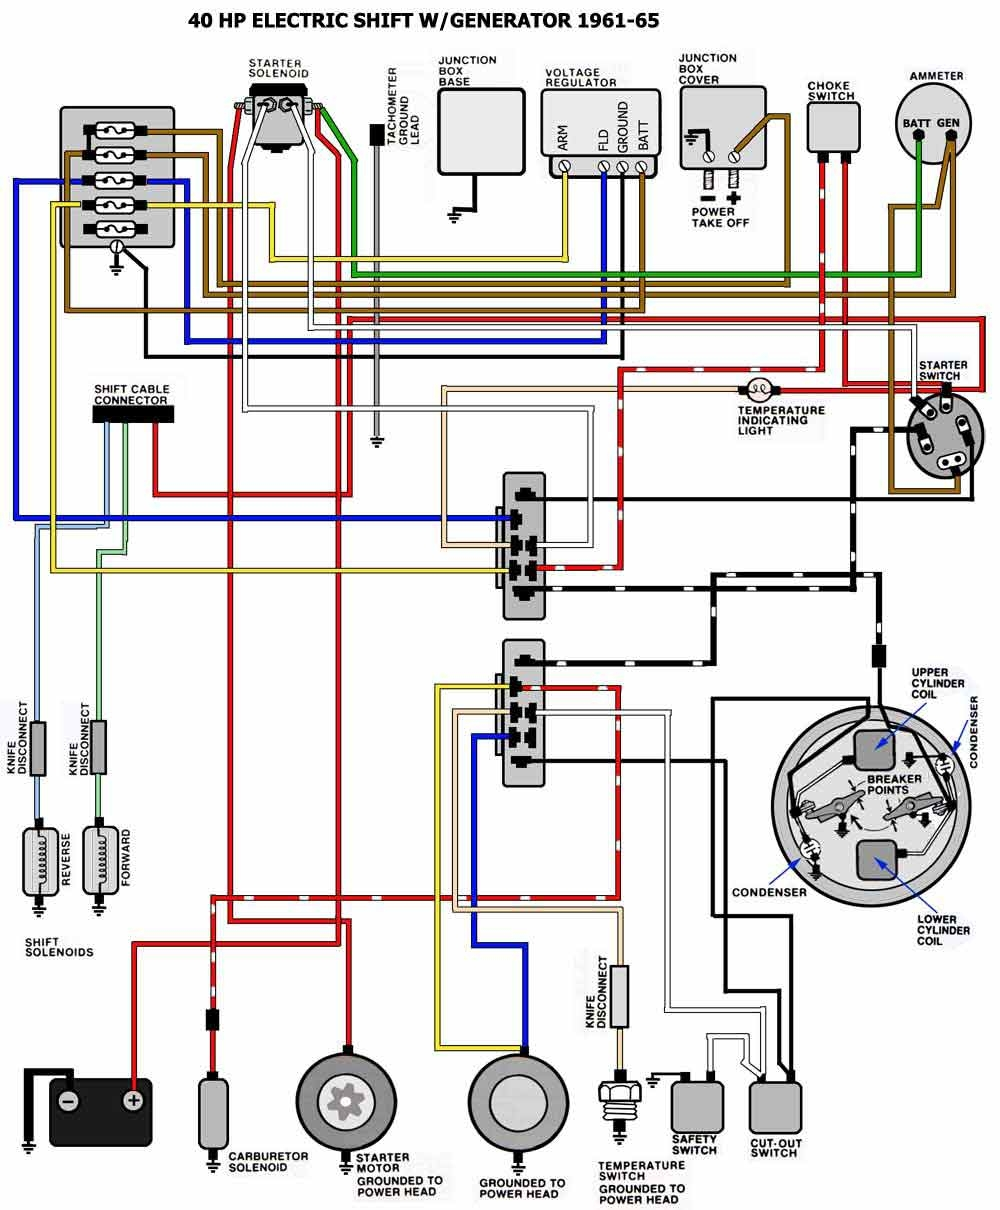 wiring diagram for mercury ignition switch wiring diagram for gm ignition switch